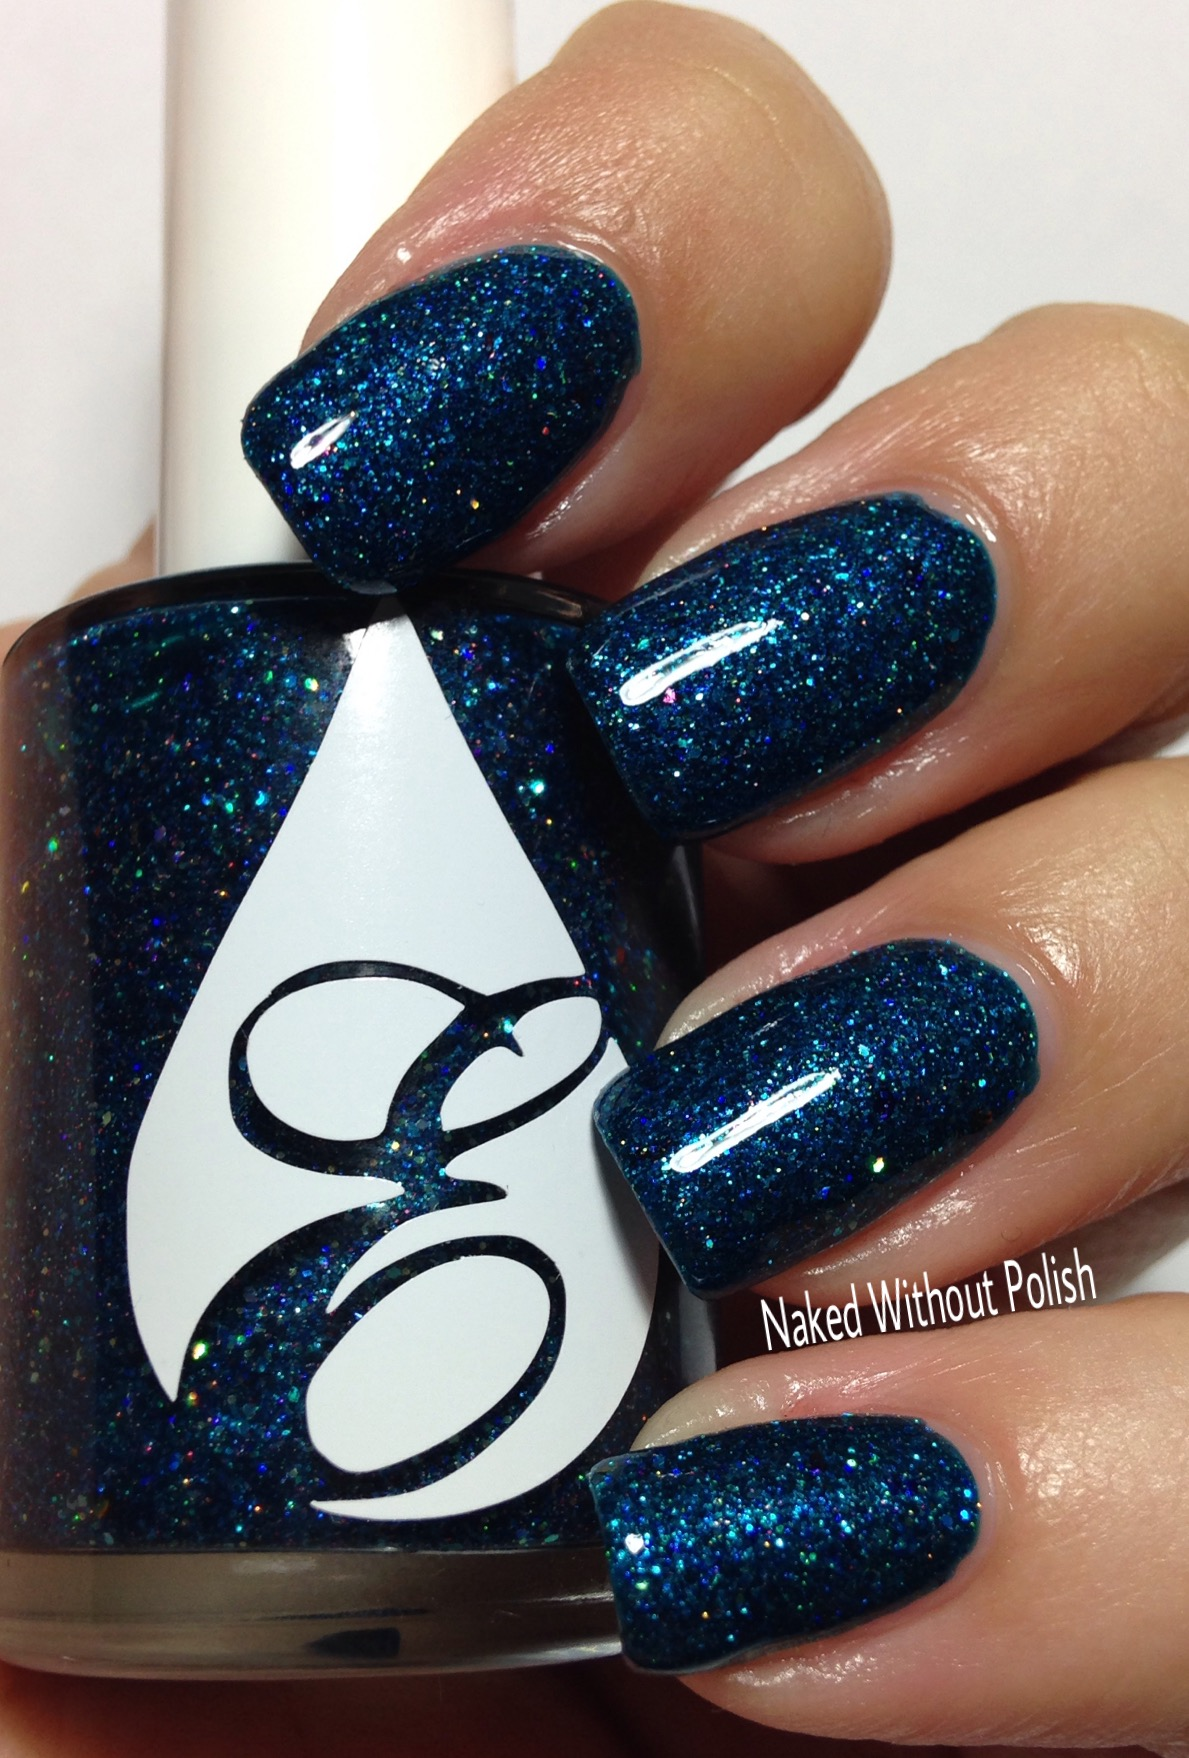 Envy-Lacquer-Make-Waves-11